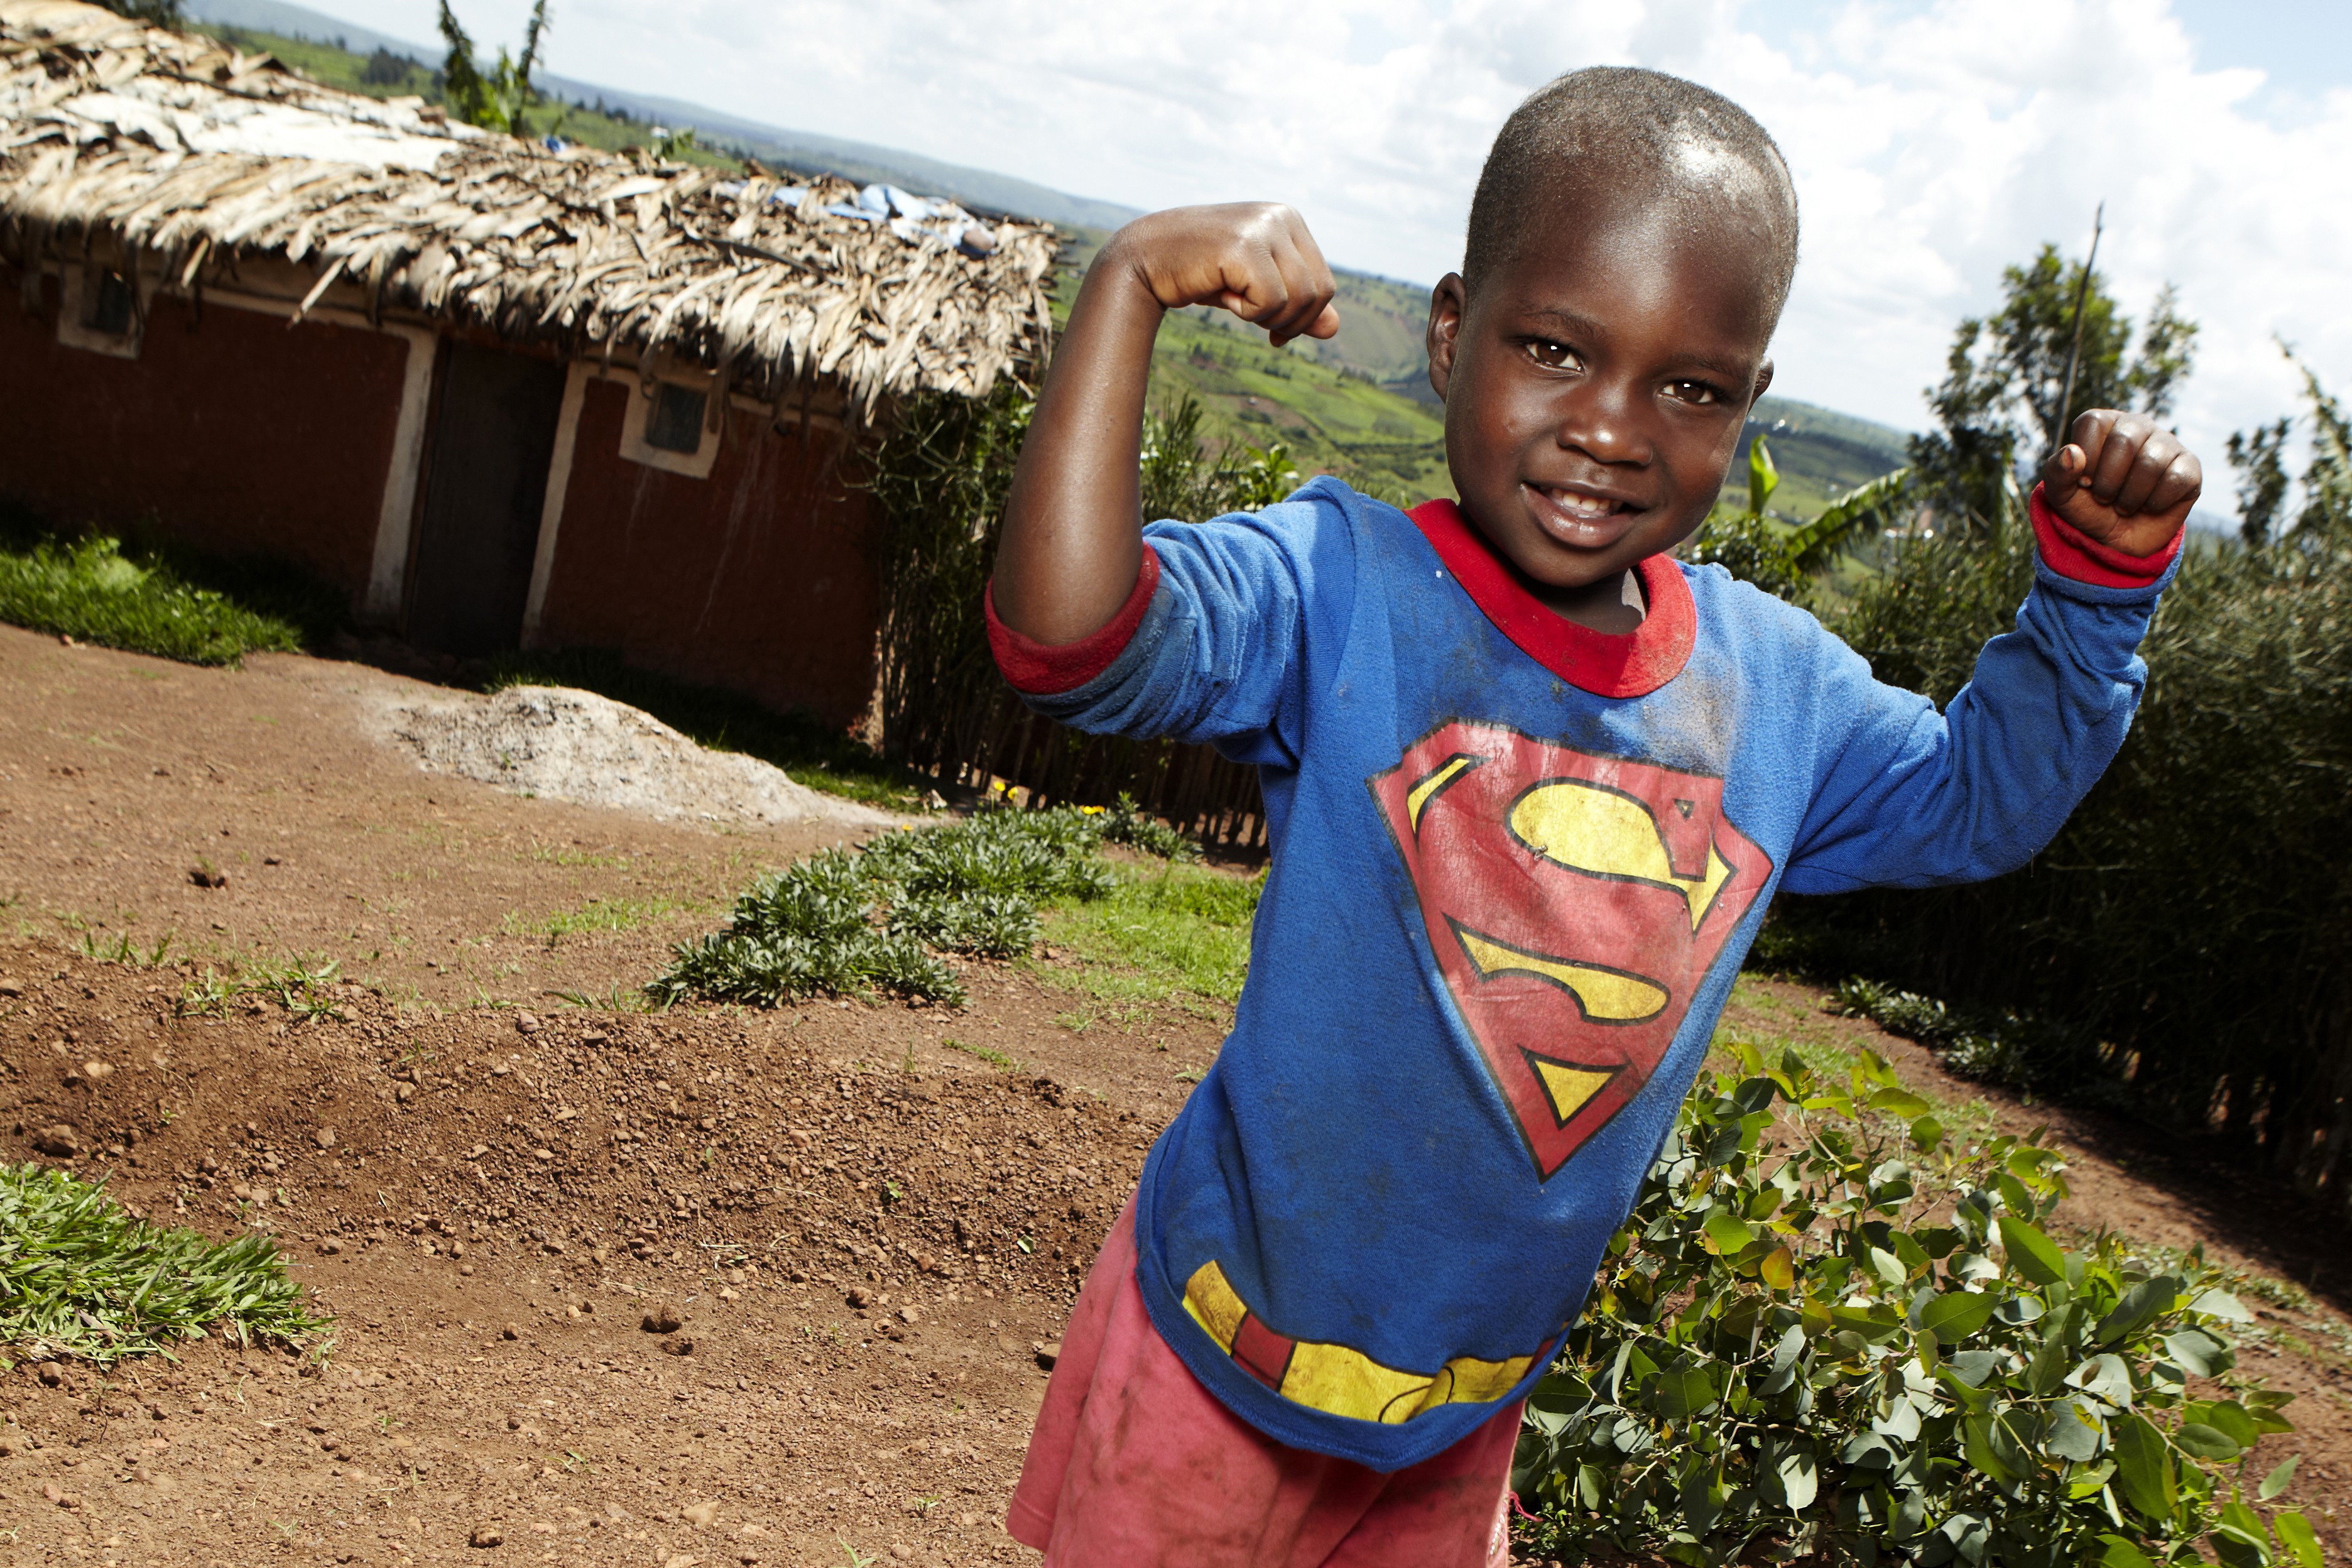 Our sponsored children tell us how to conquer the day